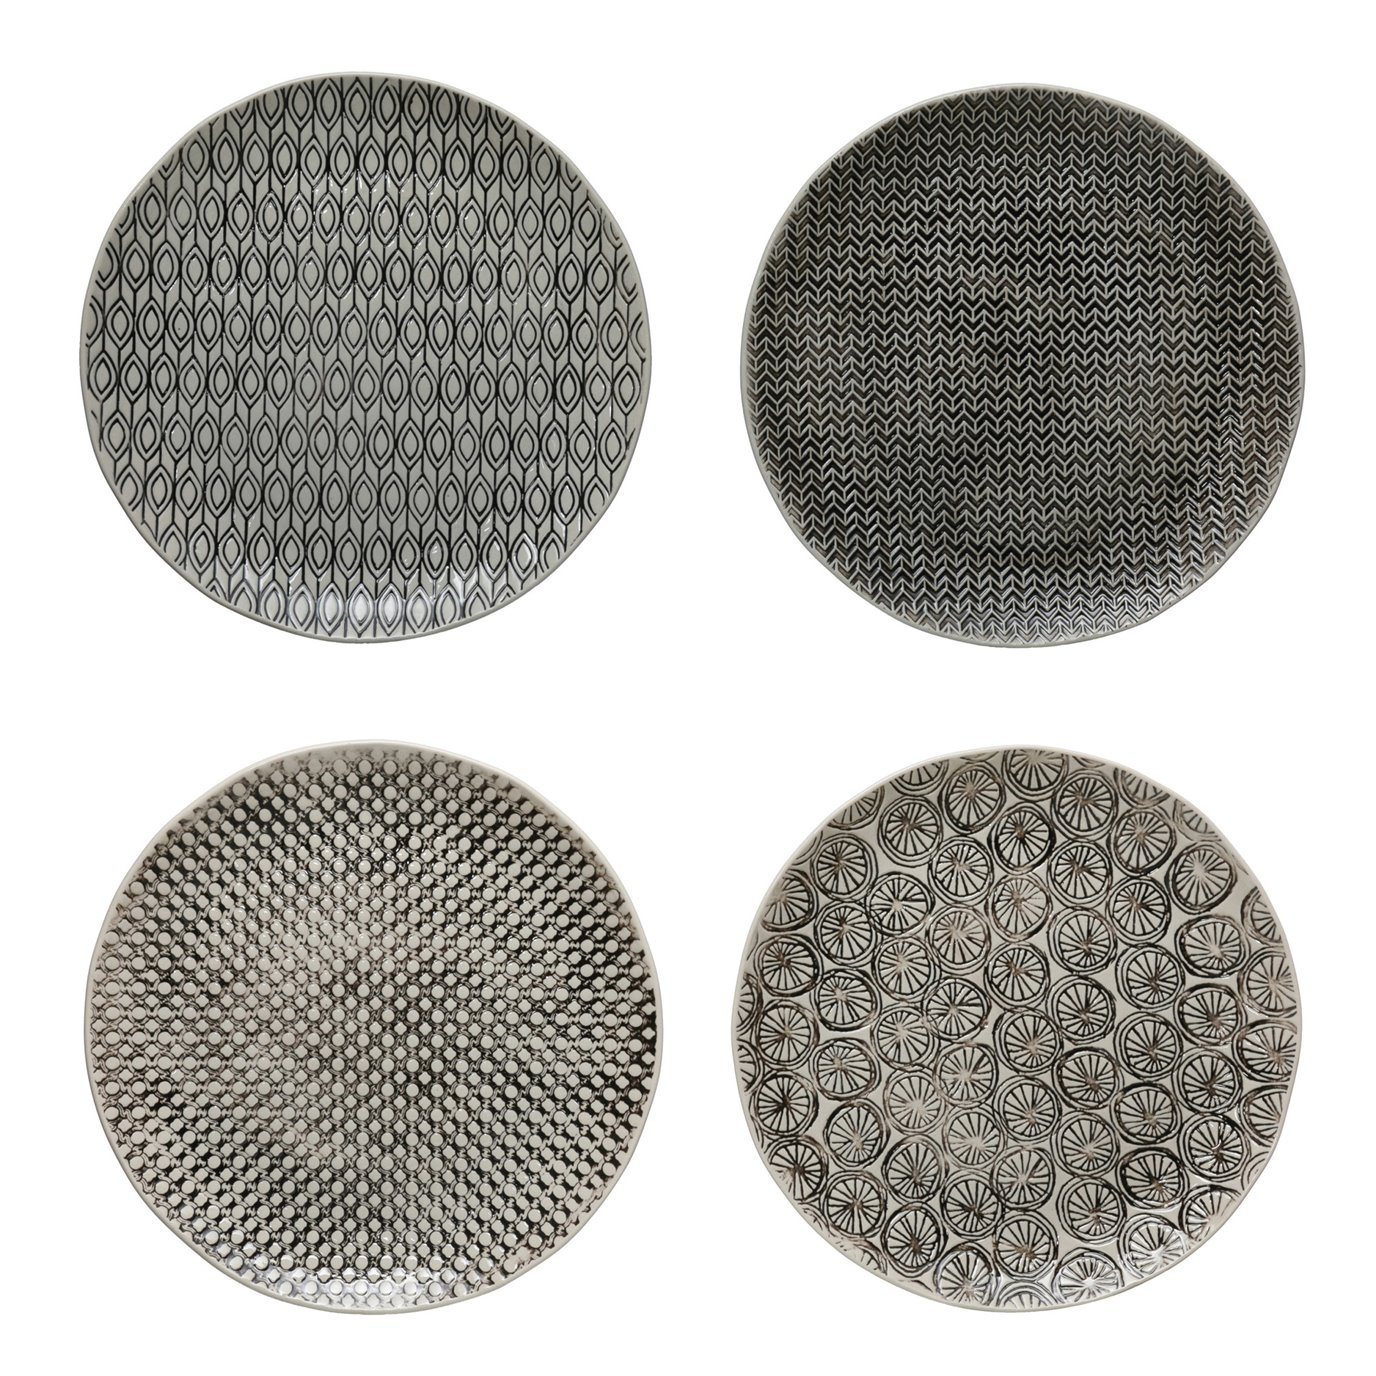 """10"""" Round Hand-Stamped Stoneware Plate w/ Embossed Pattern, Black & Cream Color, 4 Styles"""